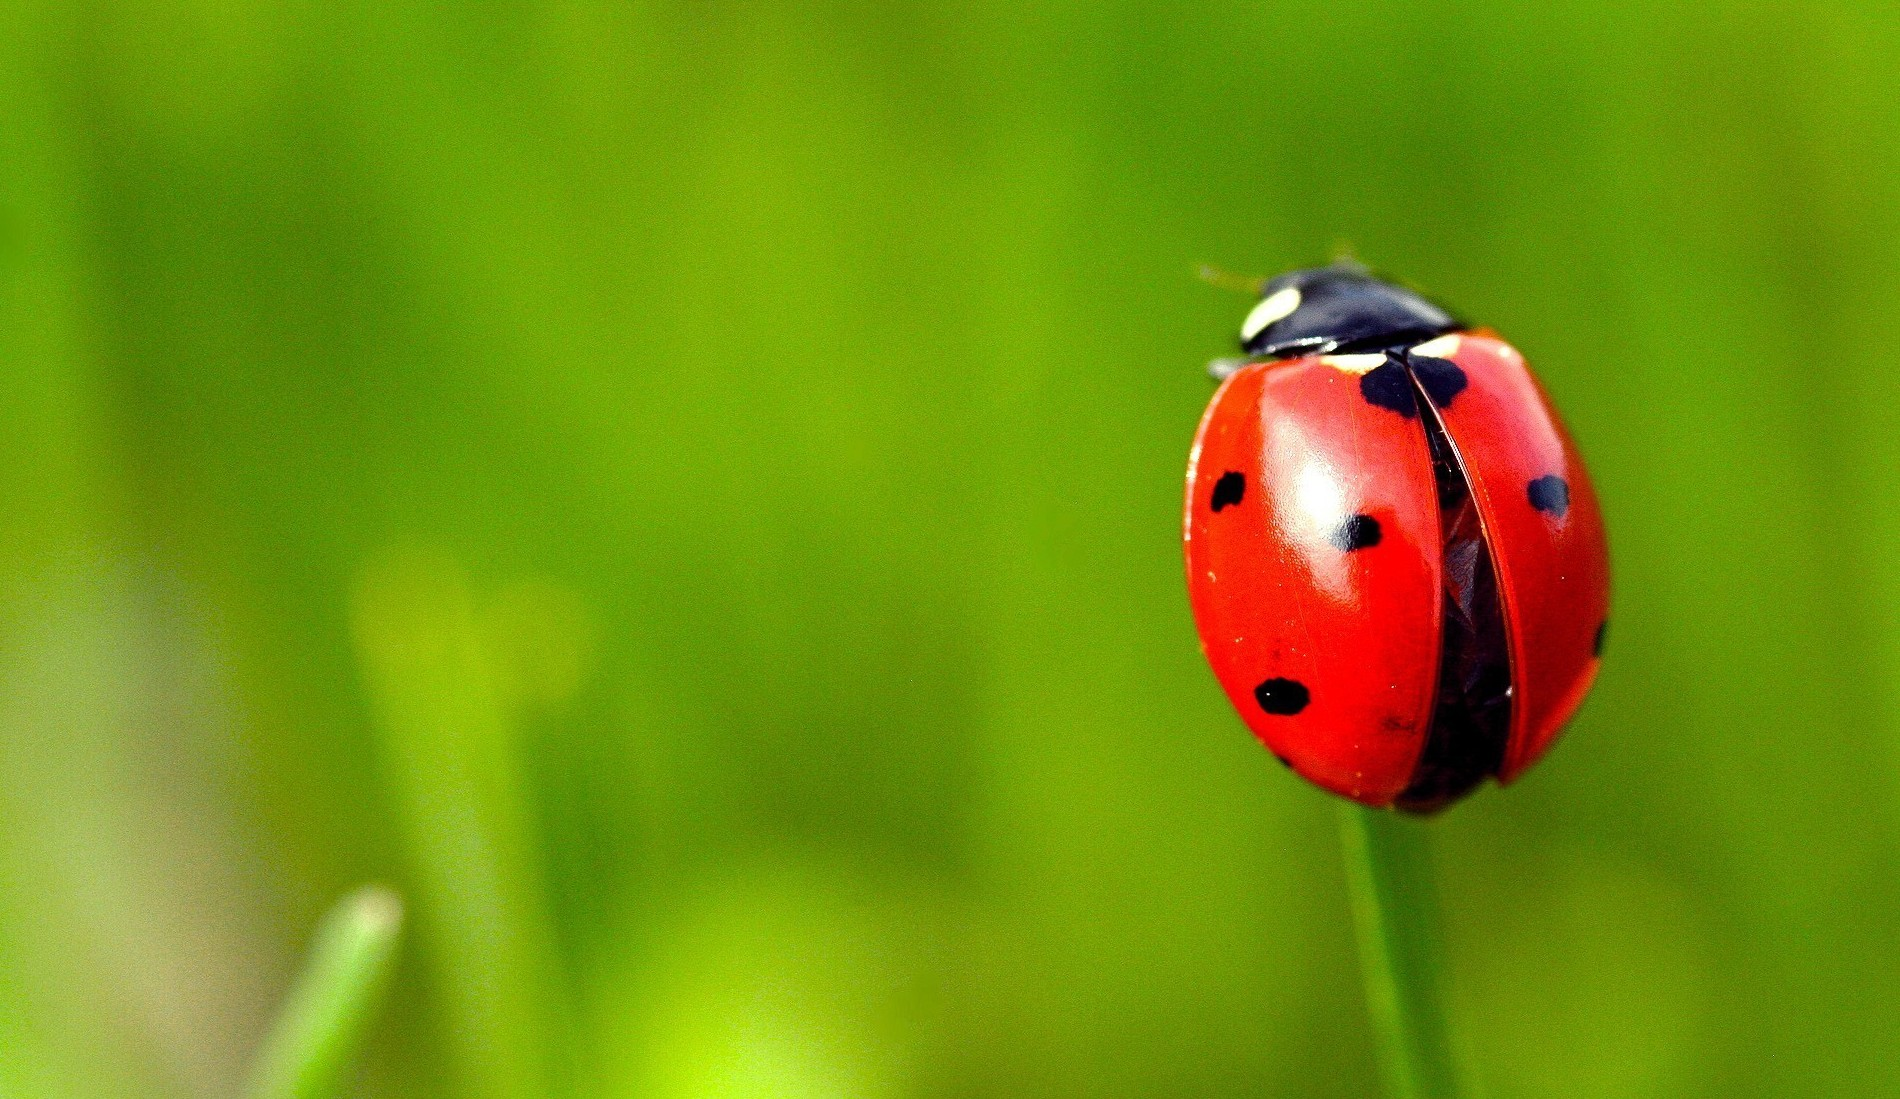 Ladybug-Picture-Wallpaper-HD-Desktop